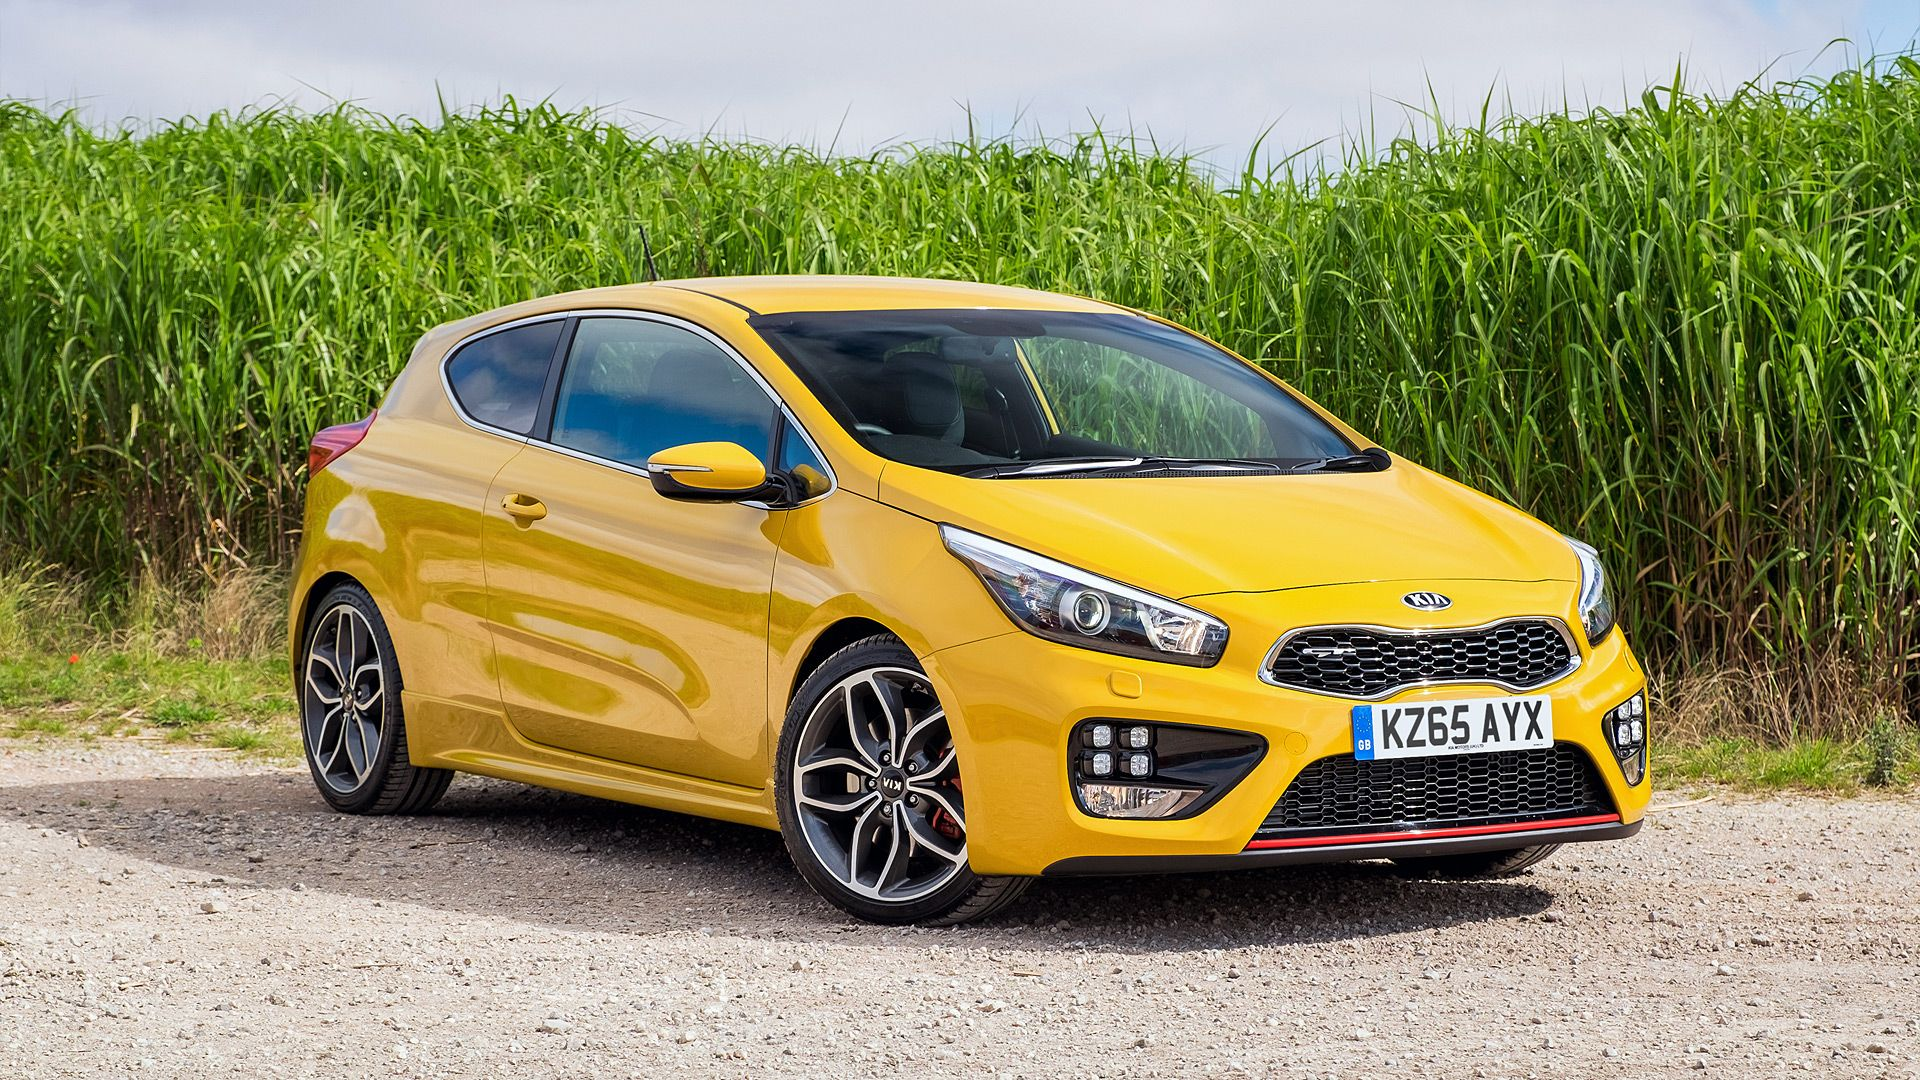 Pin By Wsupercars On Kia Car Yellow Car